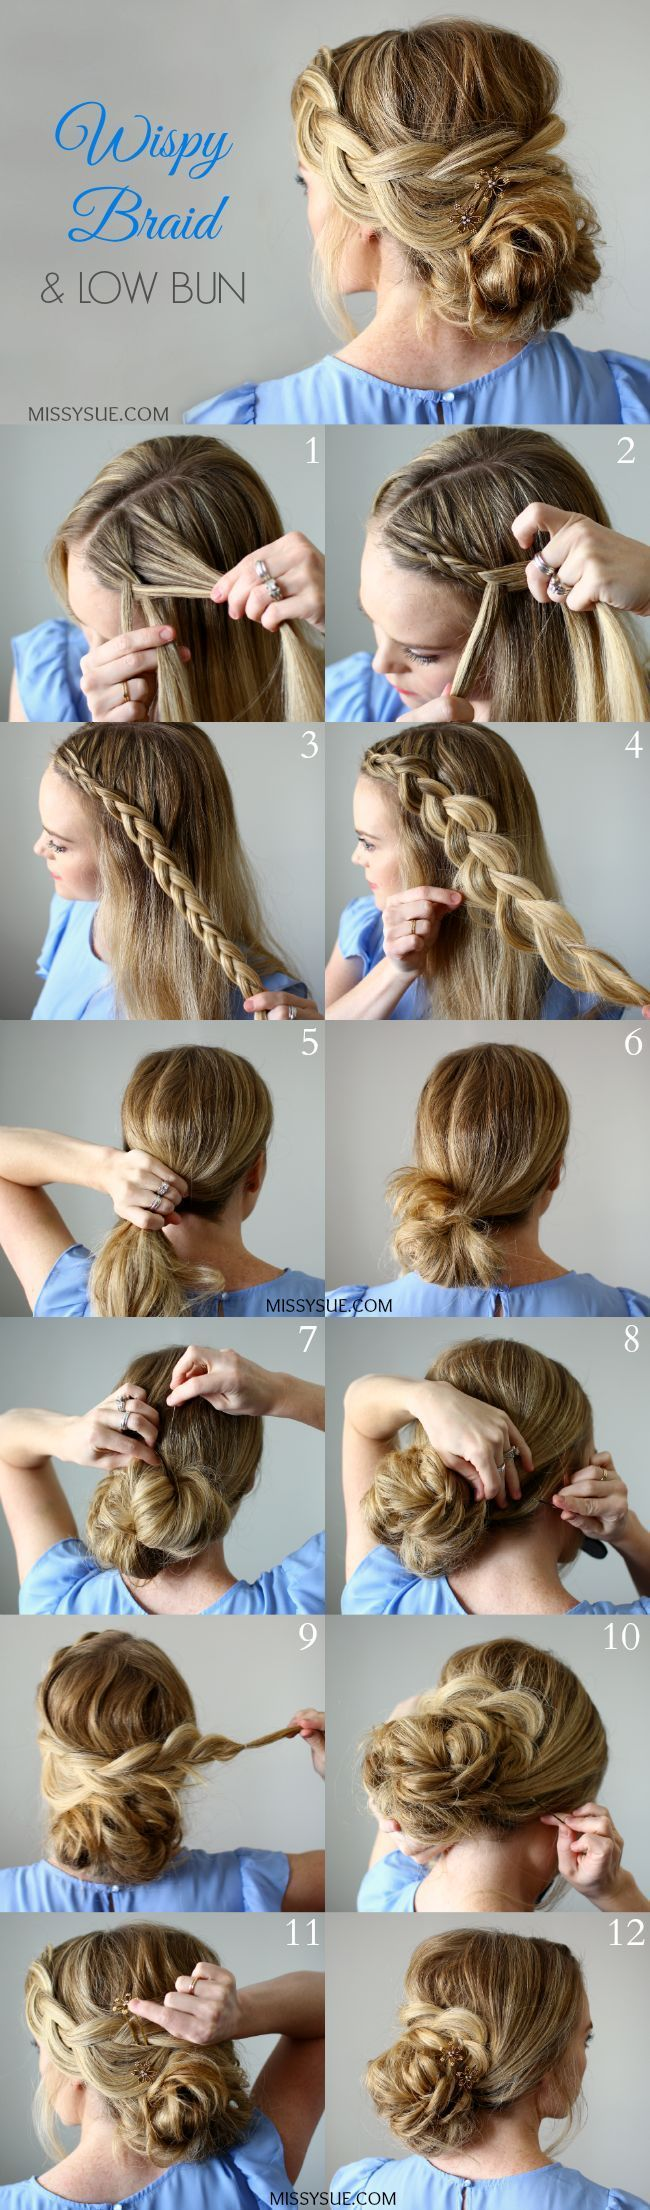 Fantastic 1000 Ideas About Step By Step Hairstyles On Pinterest Hairstyle Short Hairstyles Gunalazisus